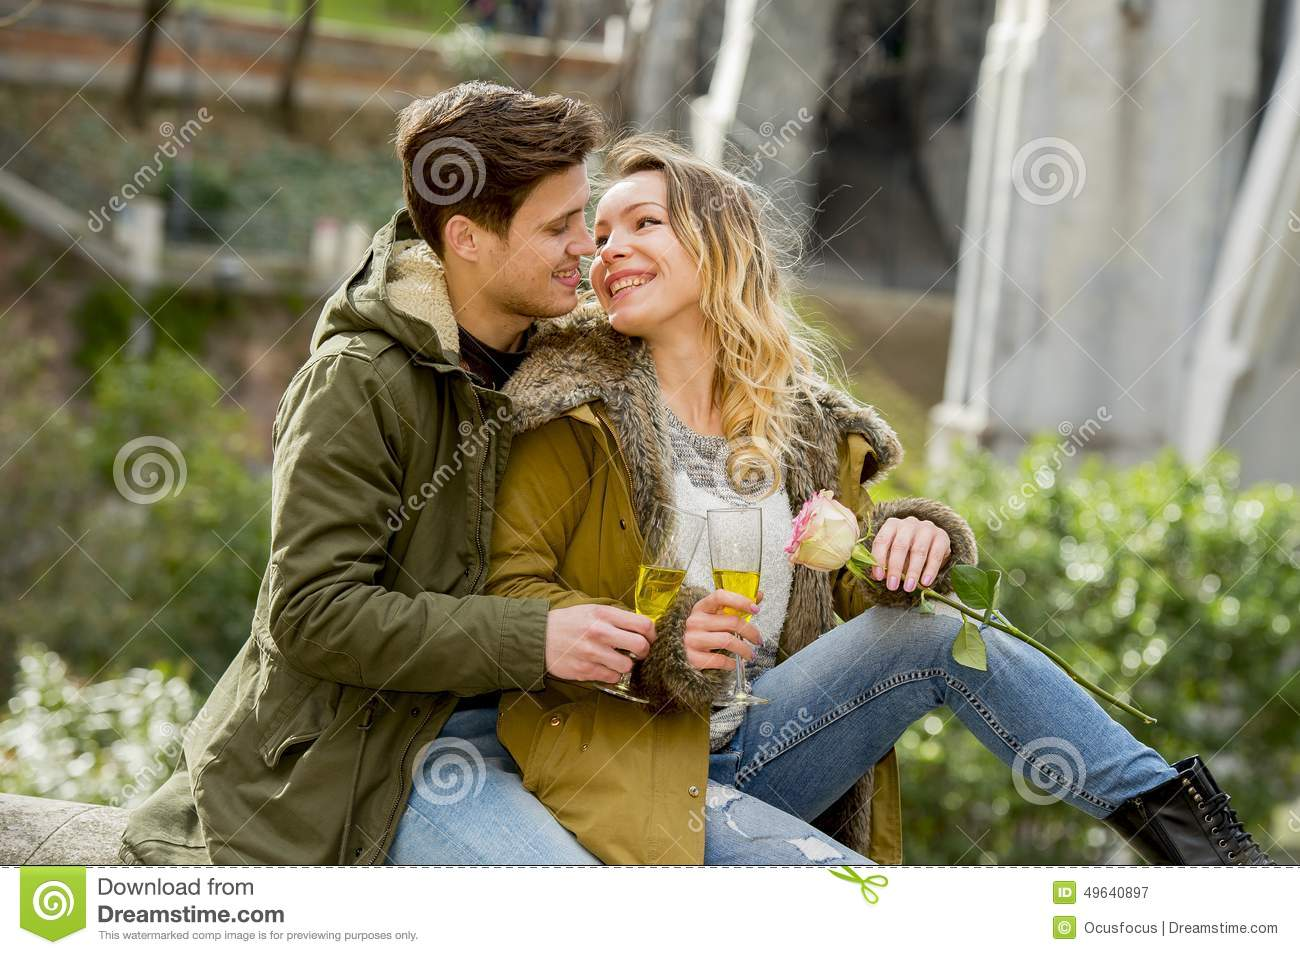 Young couple in love kissing tenderly on street celebrating Valentines day or anniversary cheering in Champagne